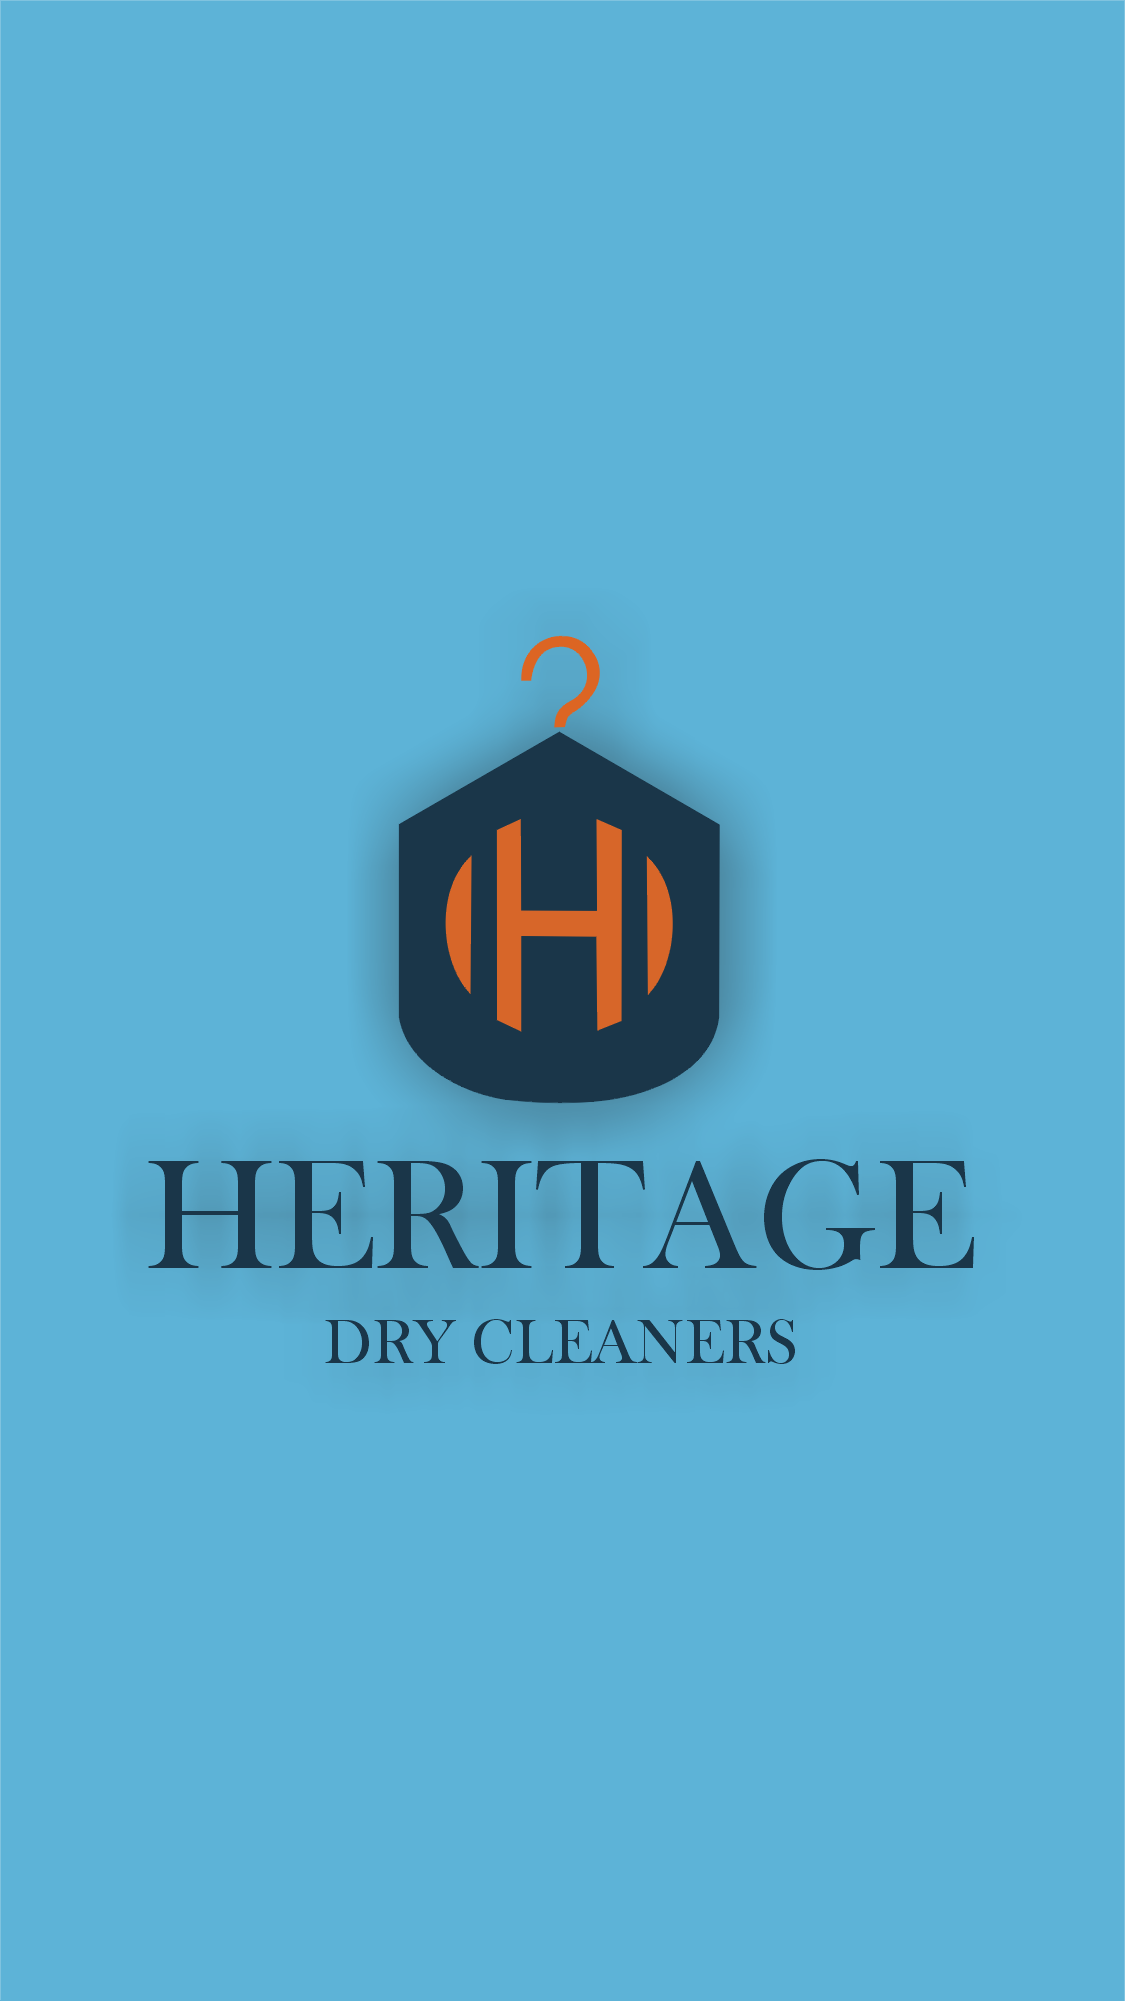 HERITAGE DRYCLEANERS image